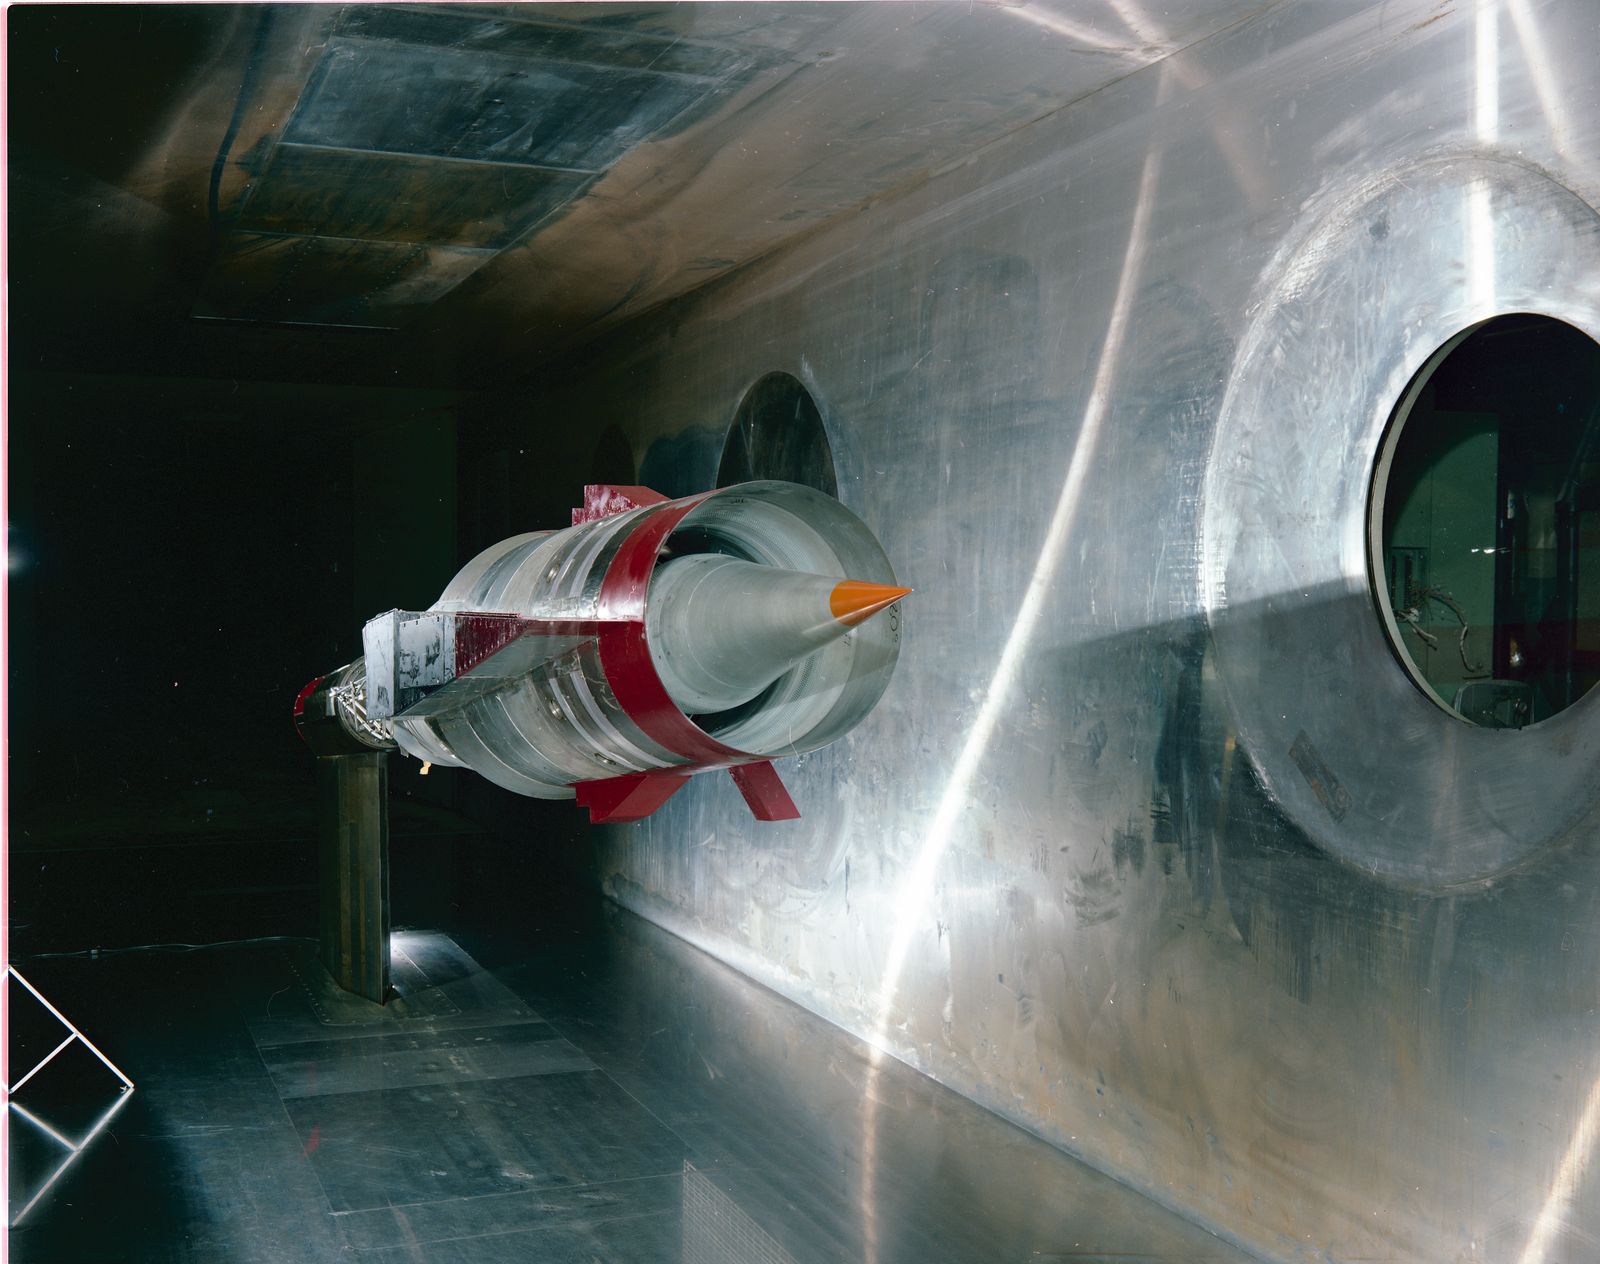 SCR INLET IN THE 10X10 FOOT WIND TUNNEL